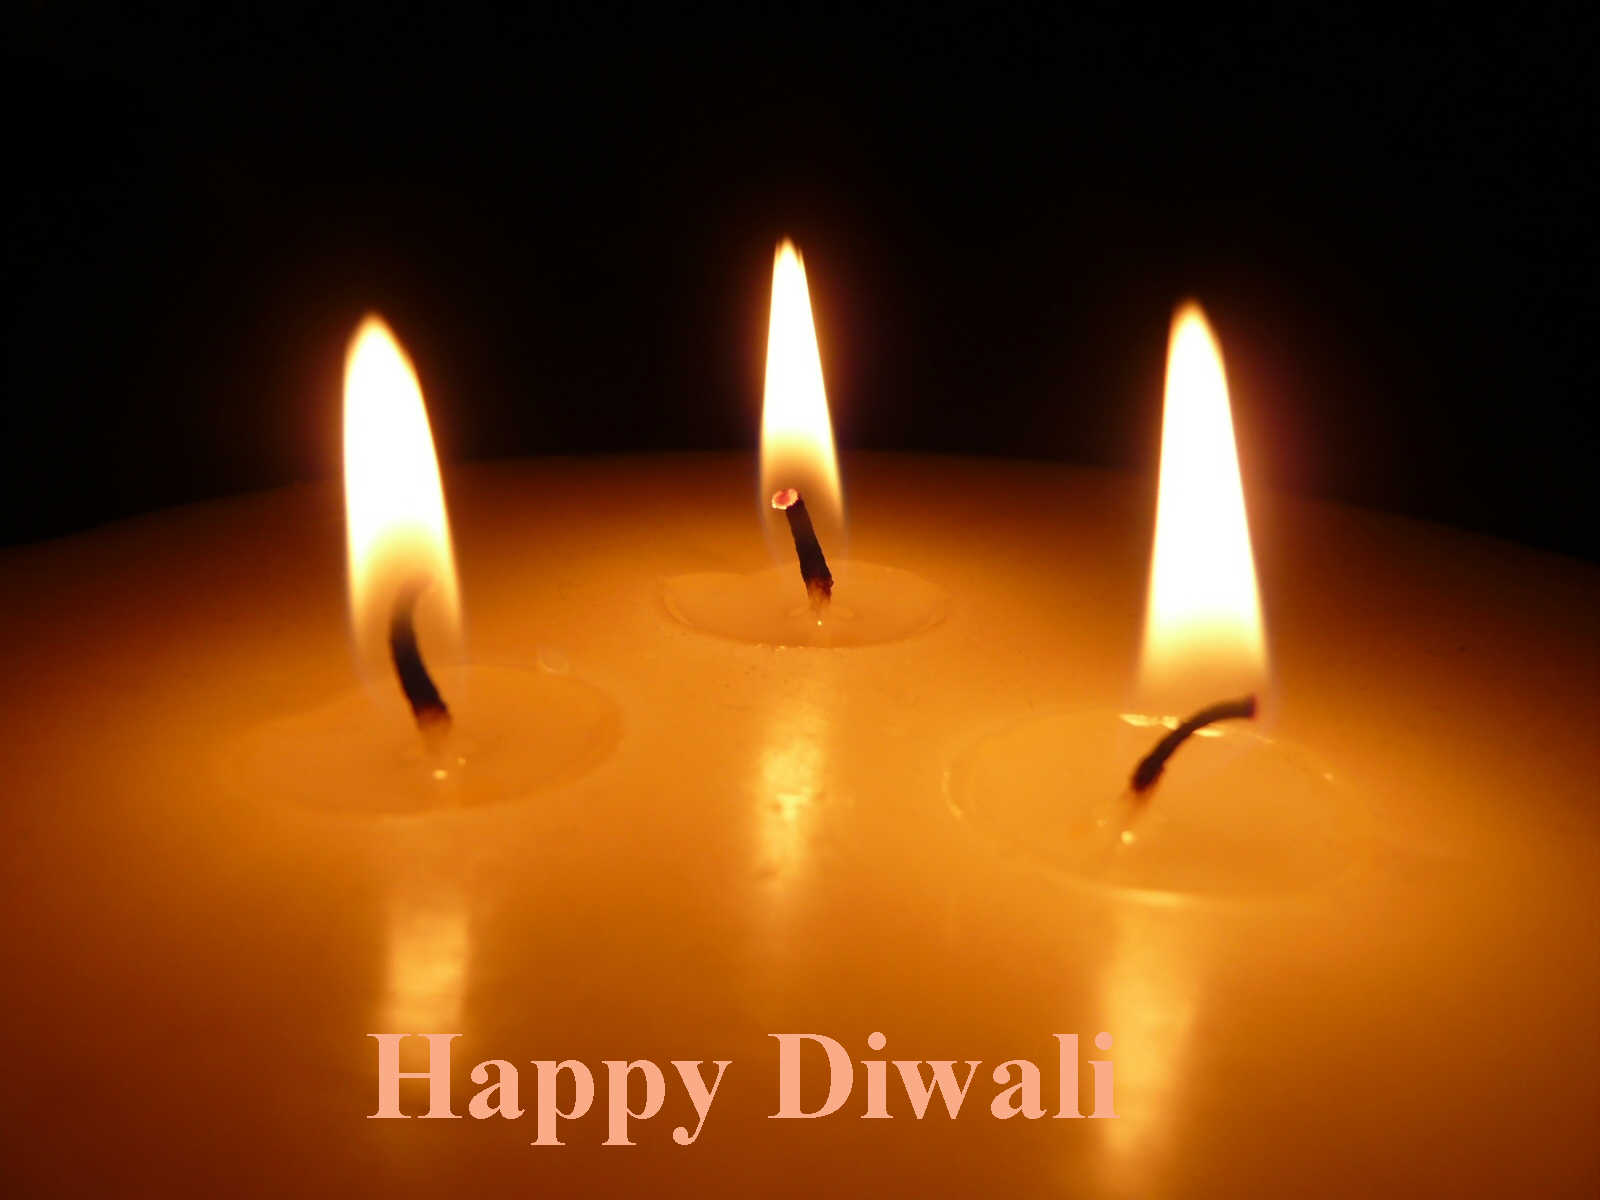 happy diwali wallpapers mega collection desktop views download